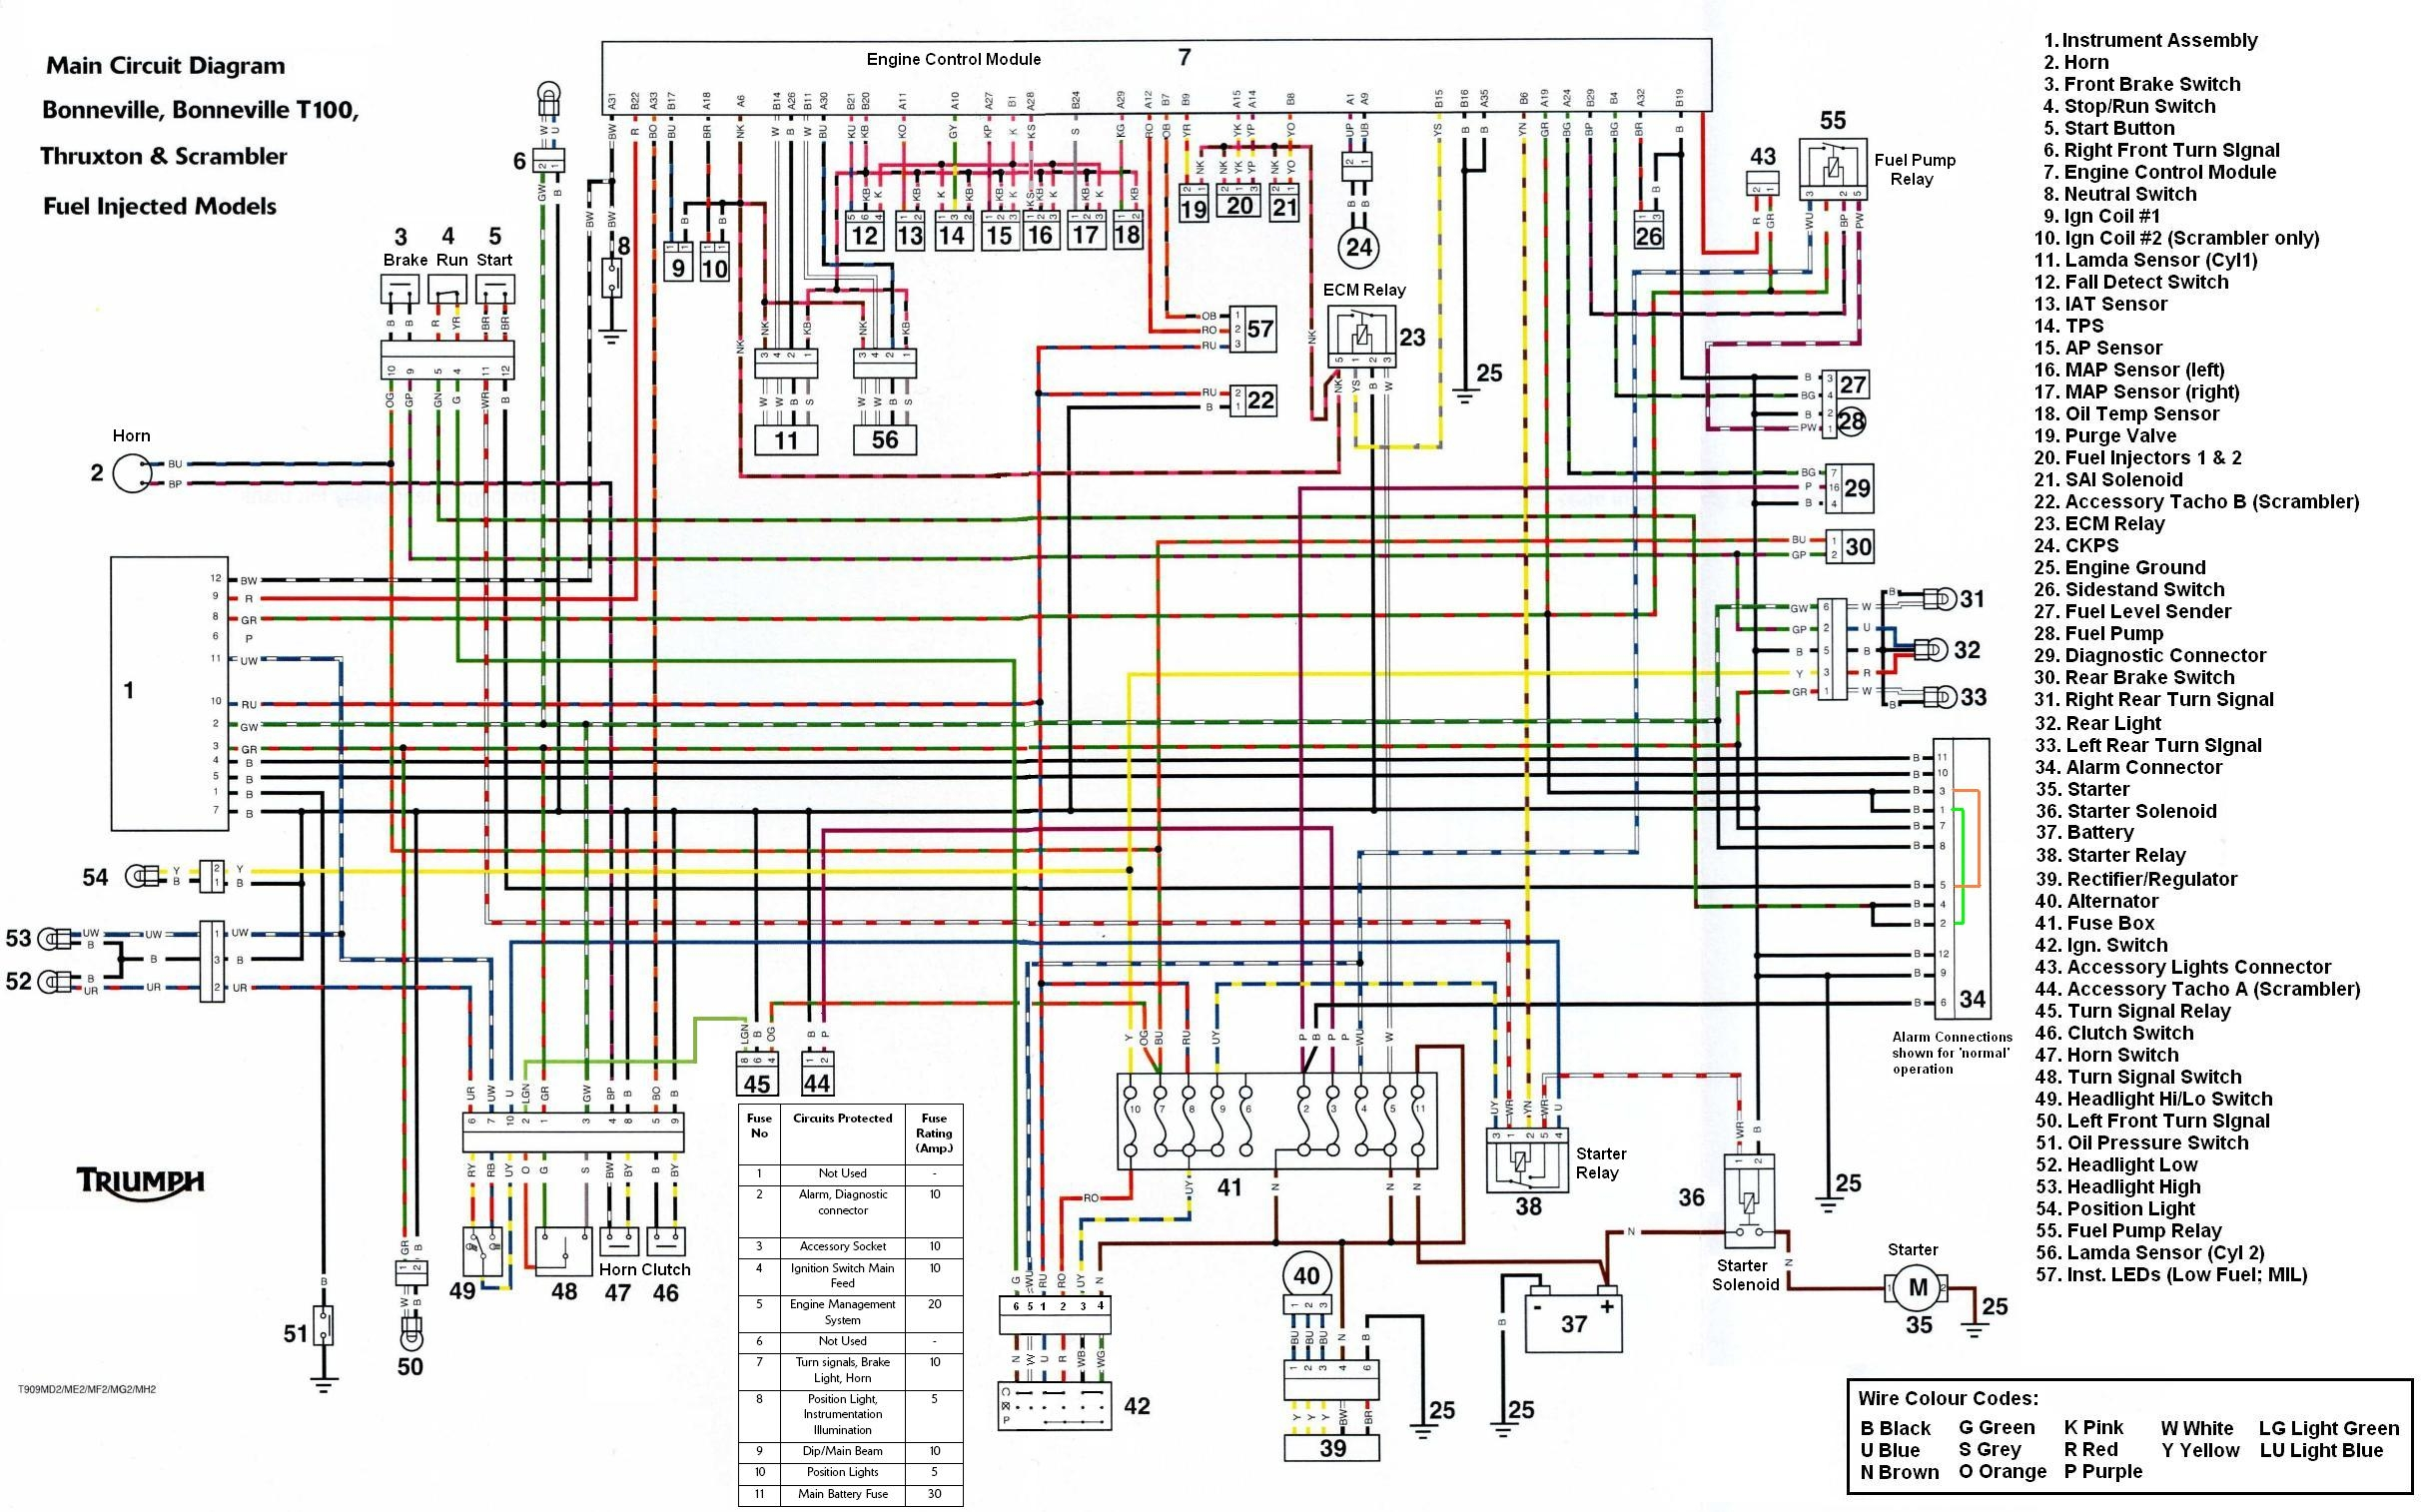 efi wiring diagram archive triumph forum triumph rat motorcycle rh triumphrat net wiring diagram fisher minute mount wiring diagram fisher minute mount plow